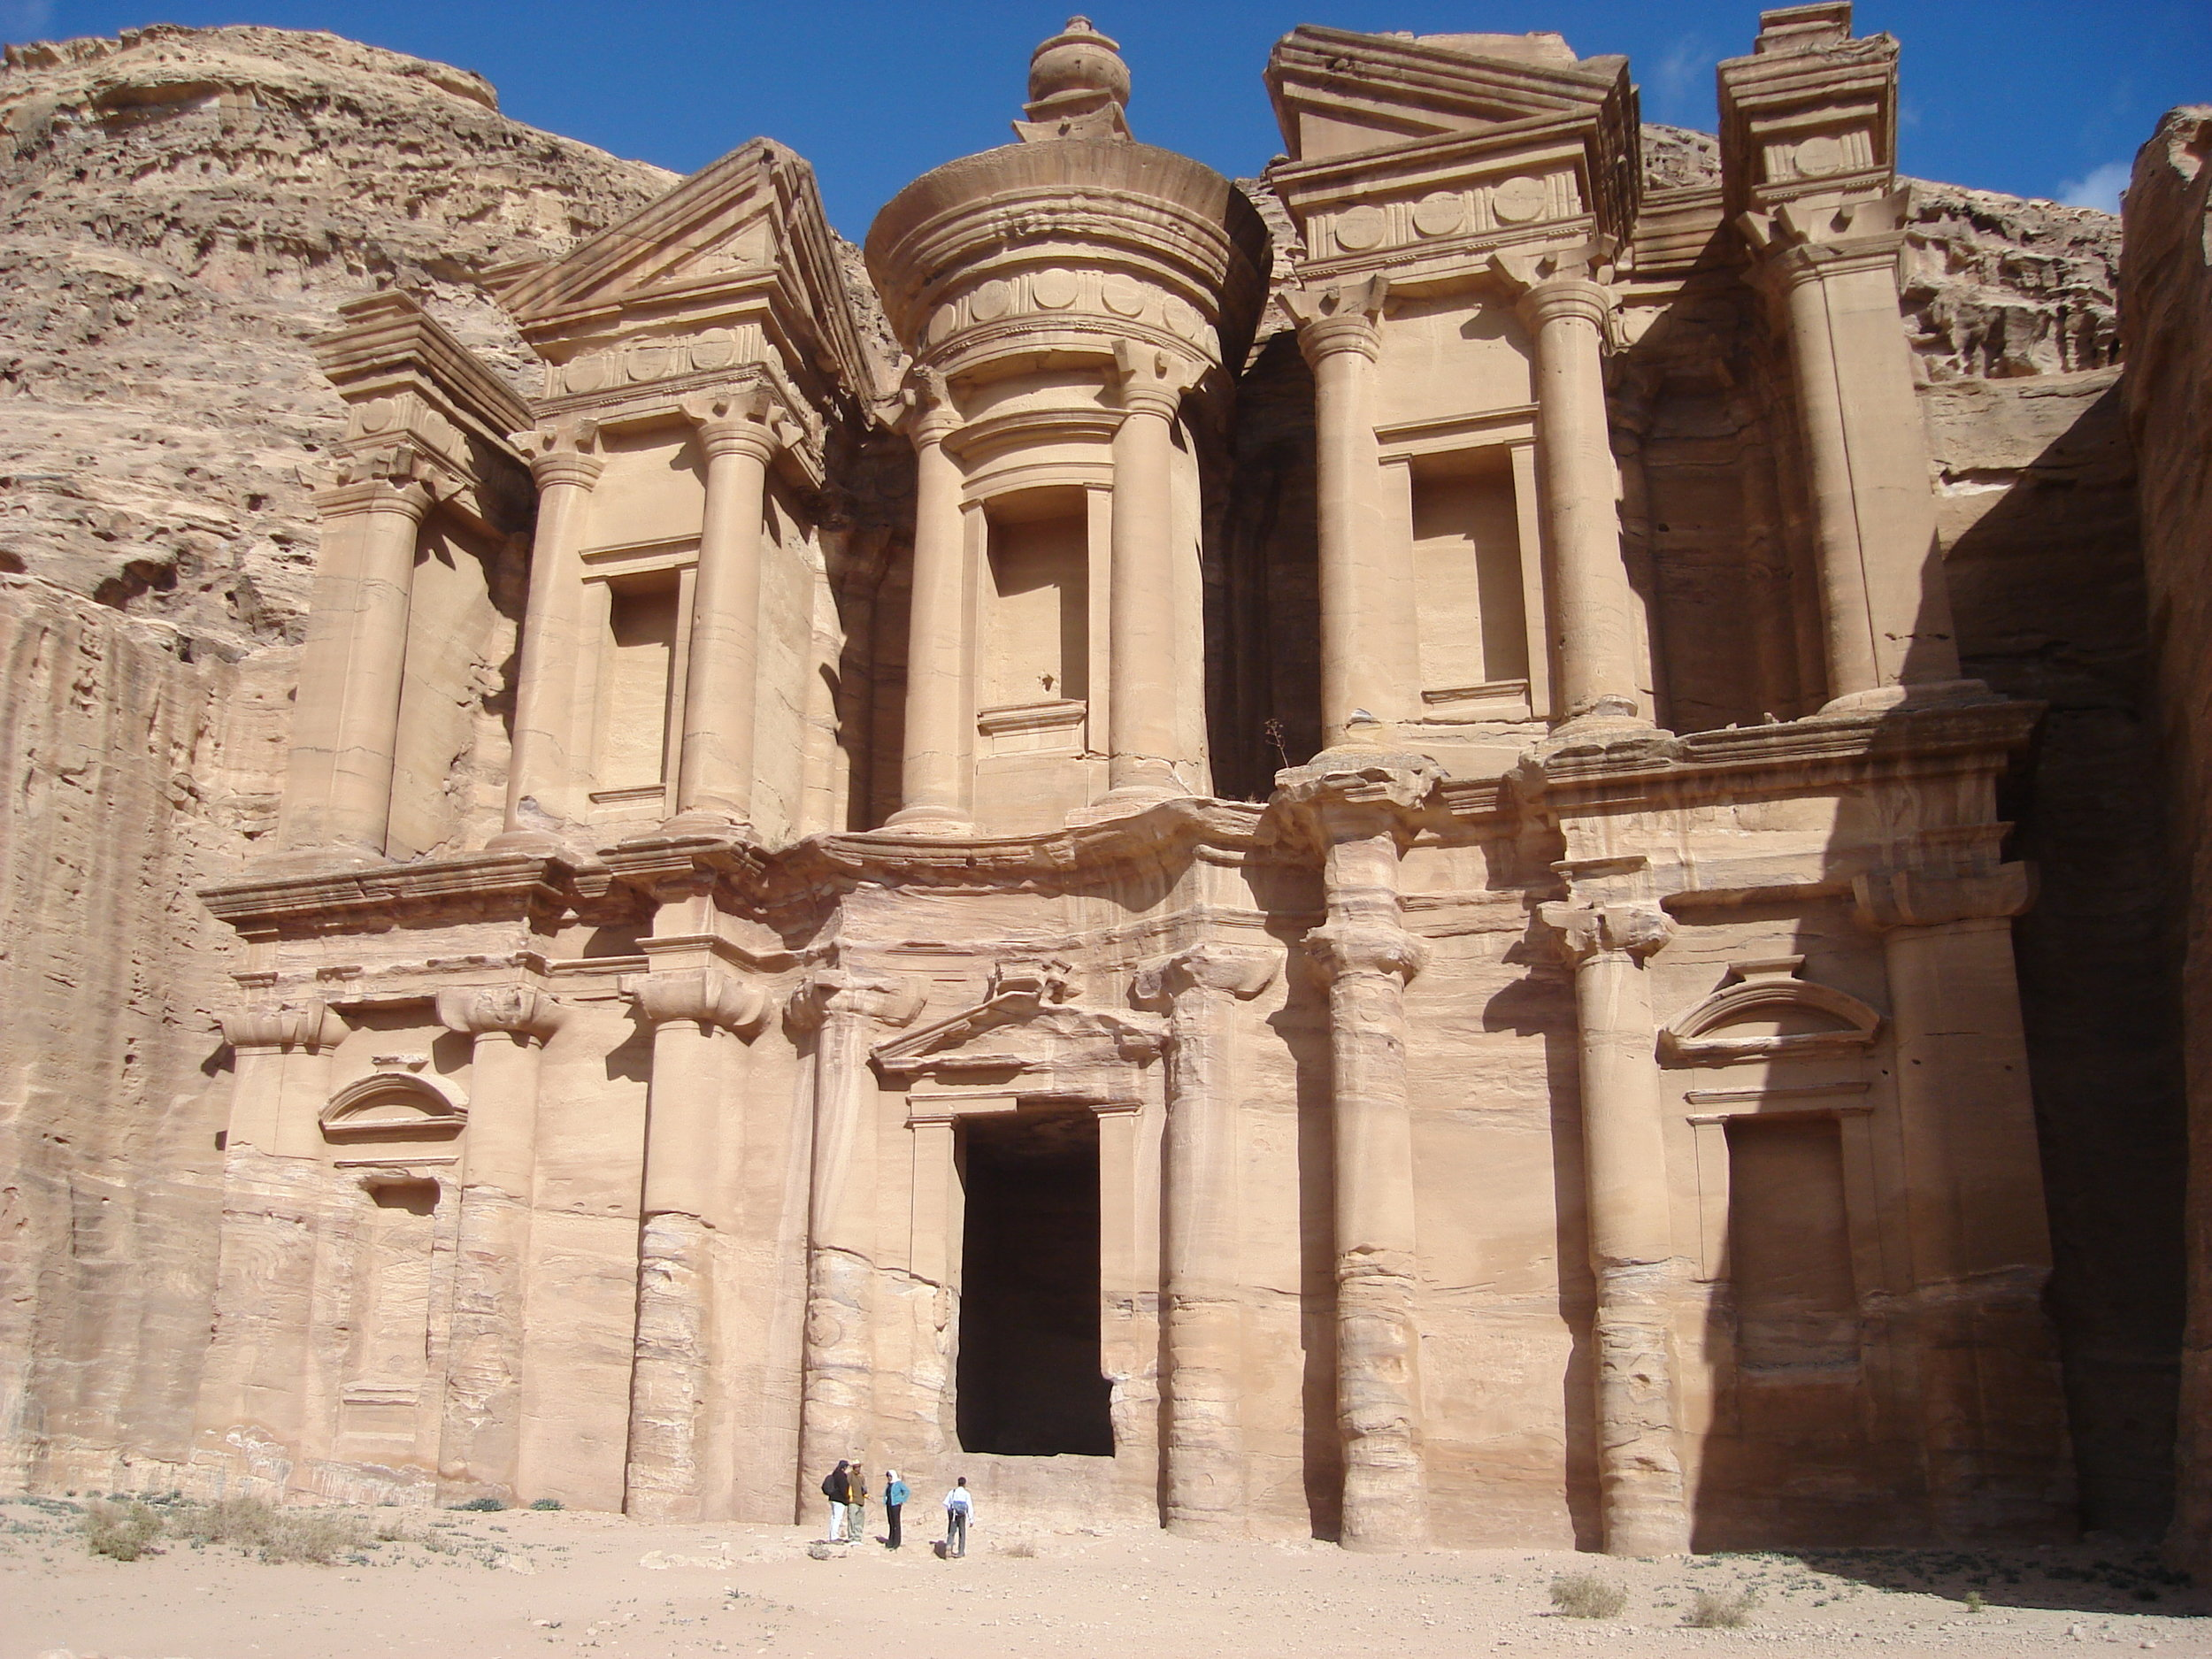 The impressive Monastery at Petra